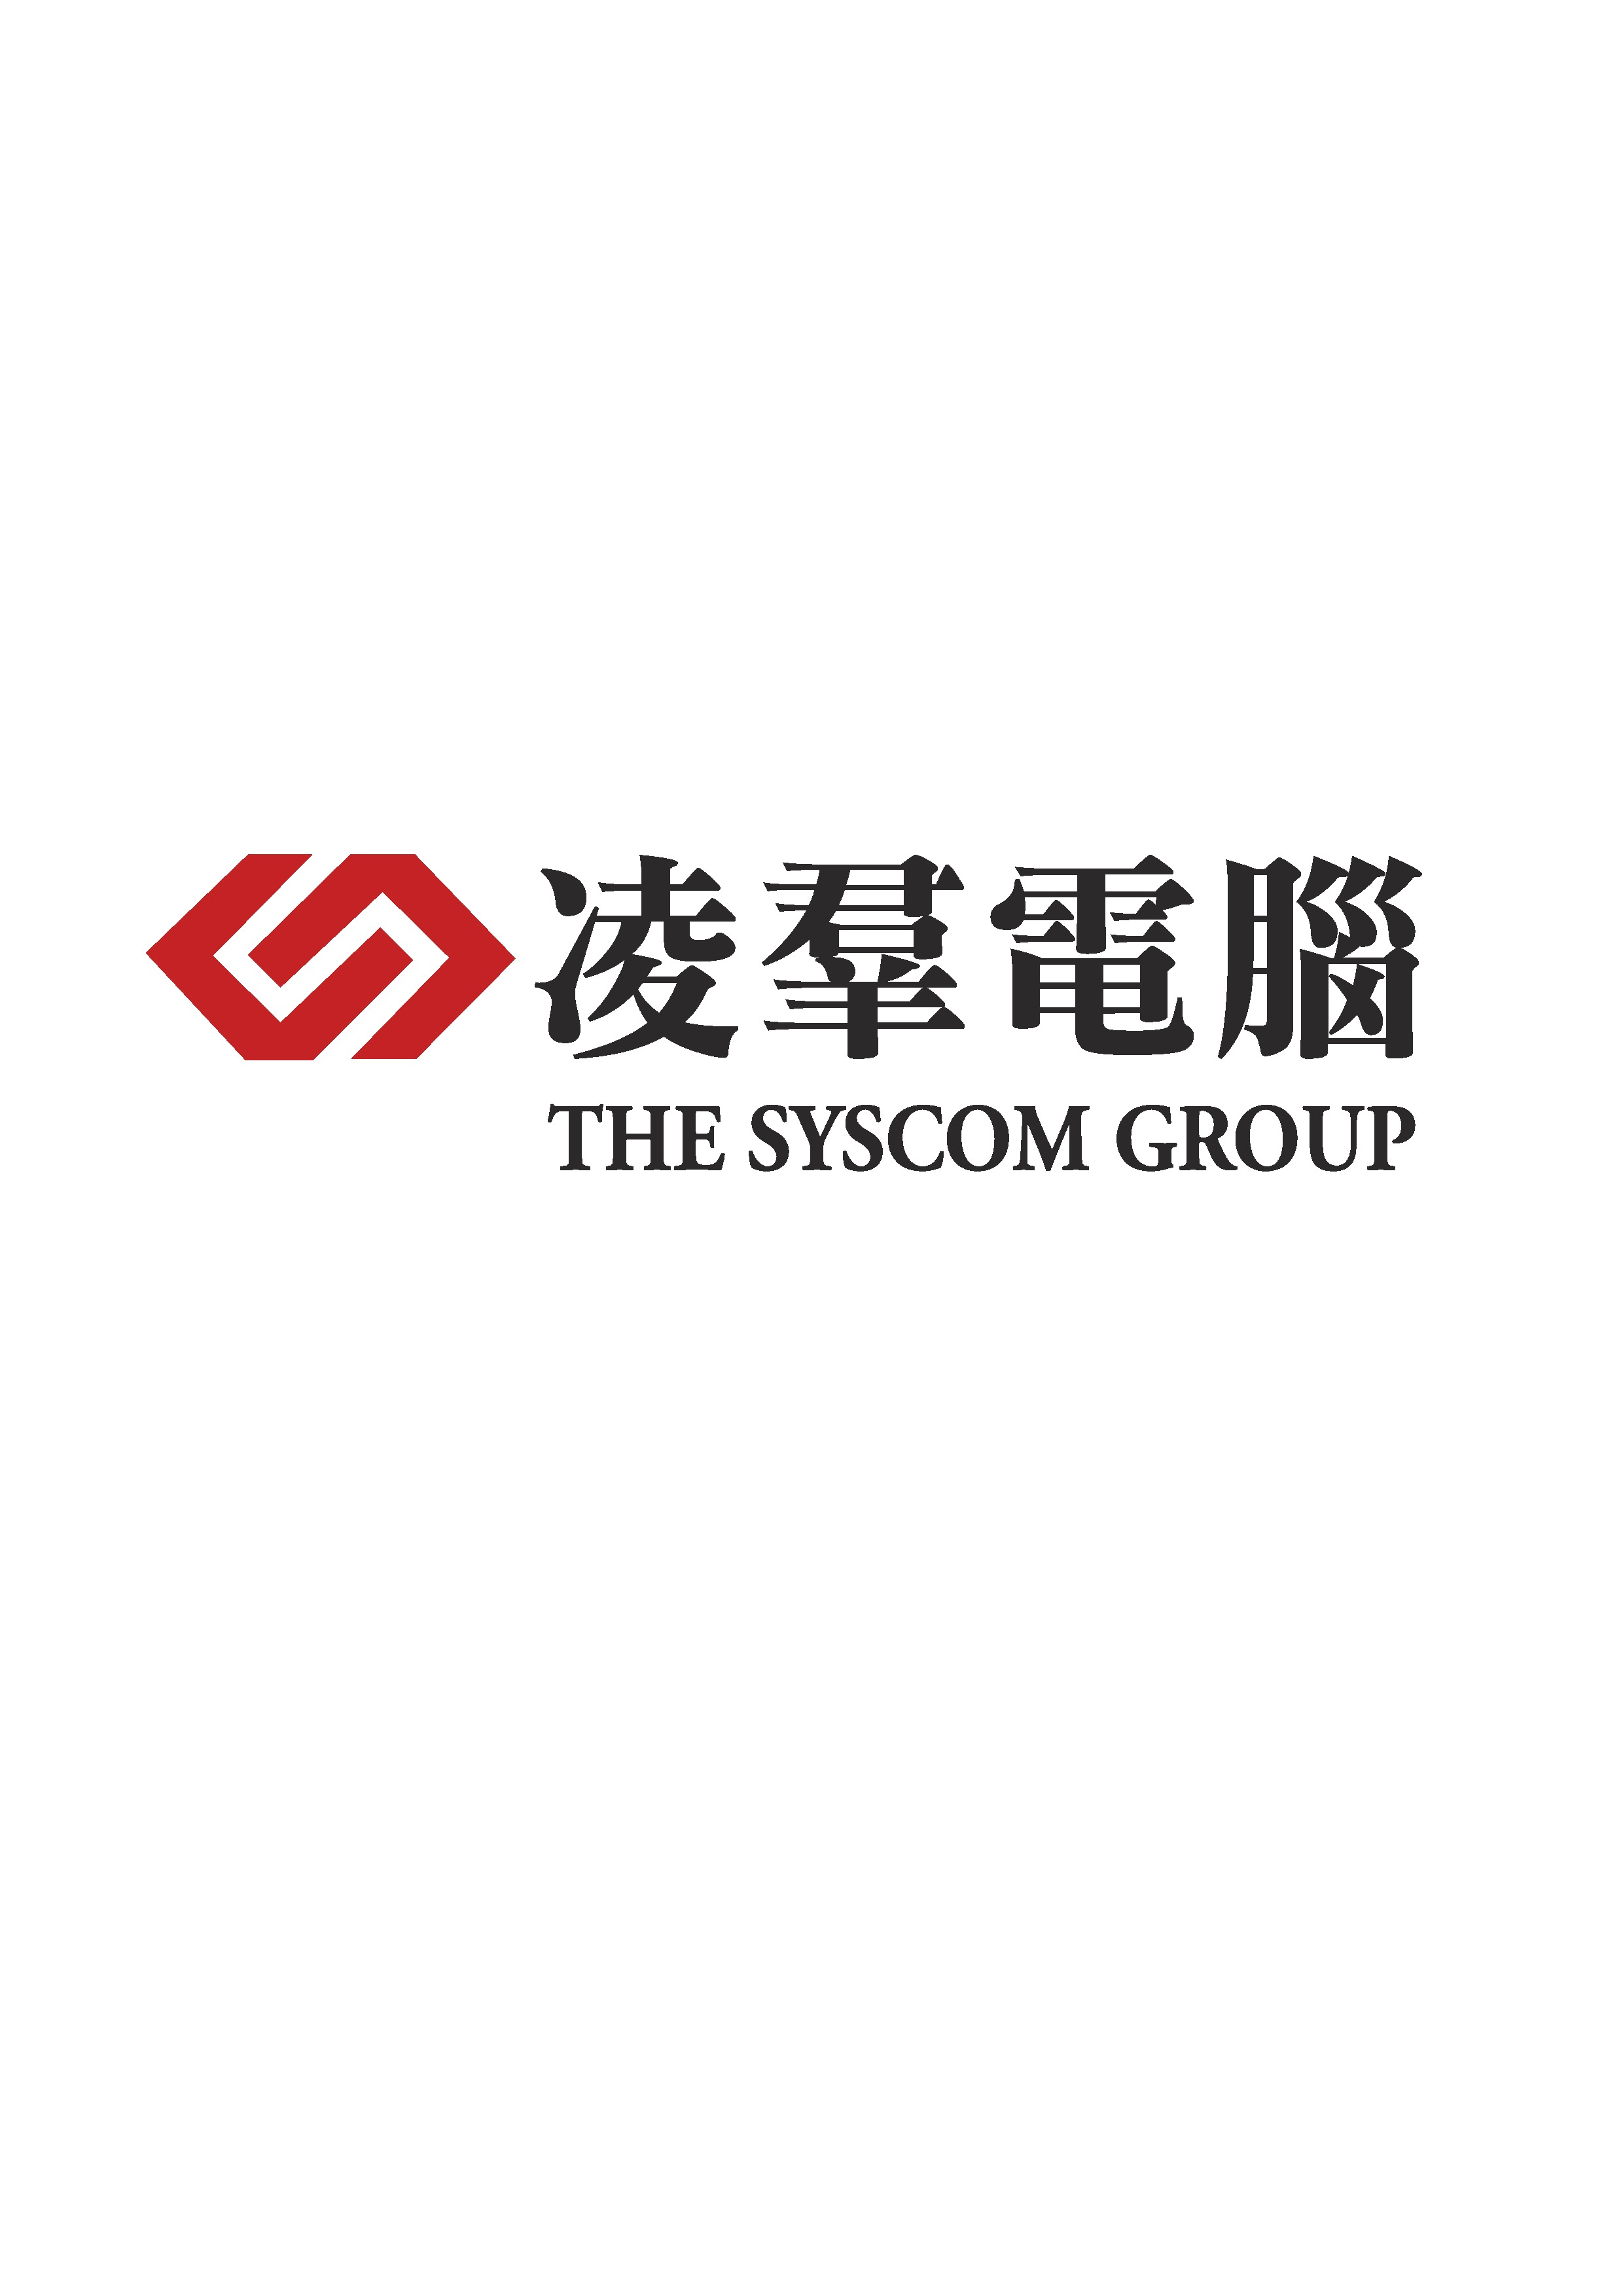 SYSCOM Computer Engineering Co.-Logo